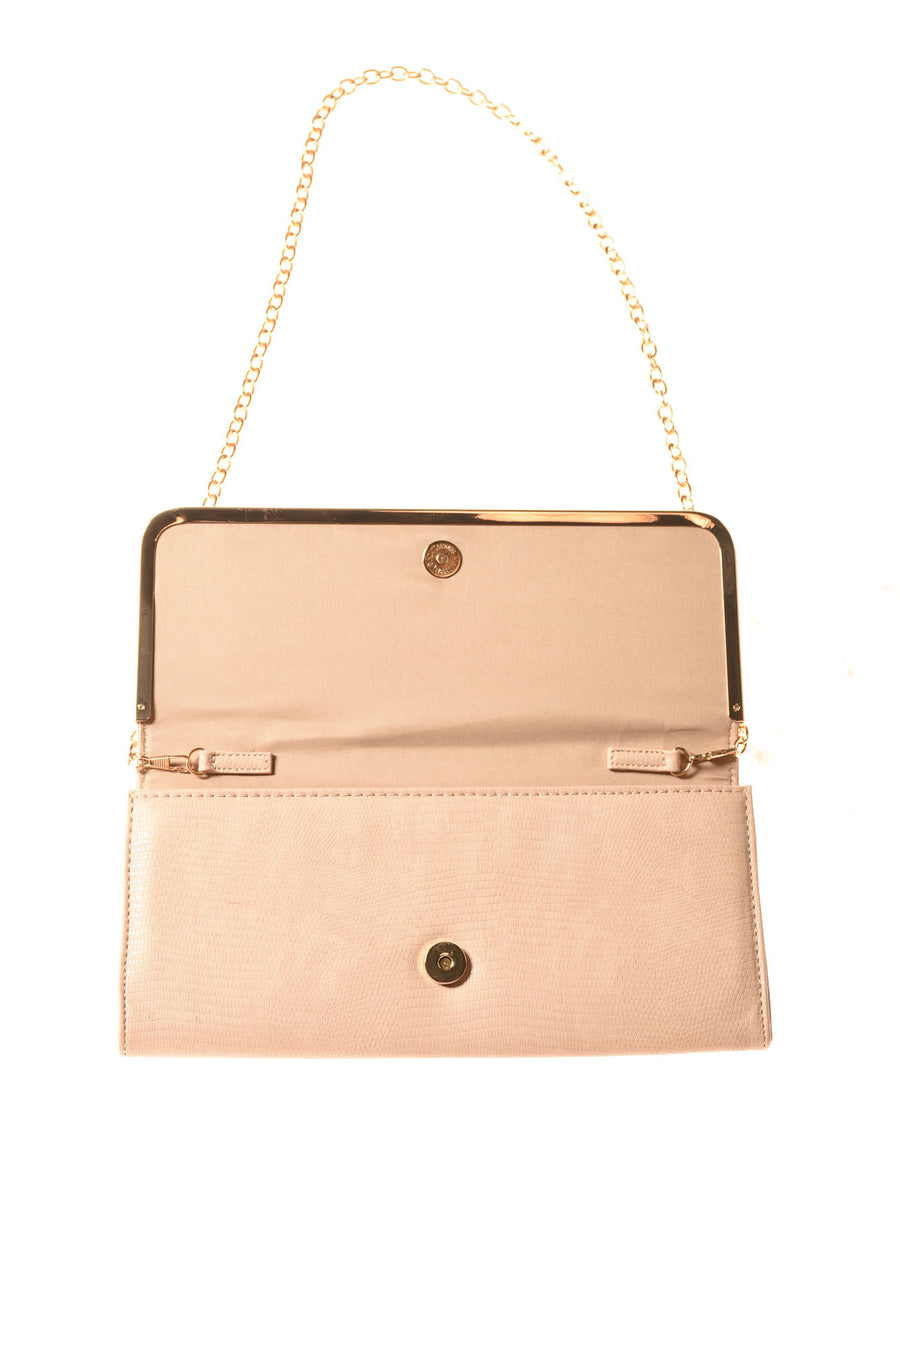 USED Aldo Women's Handbag N/A Tan